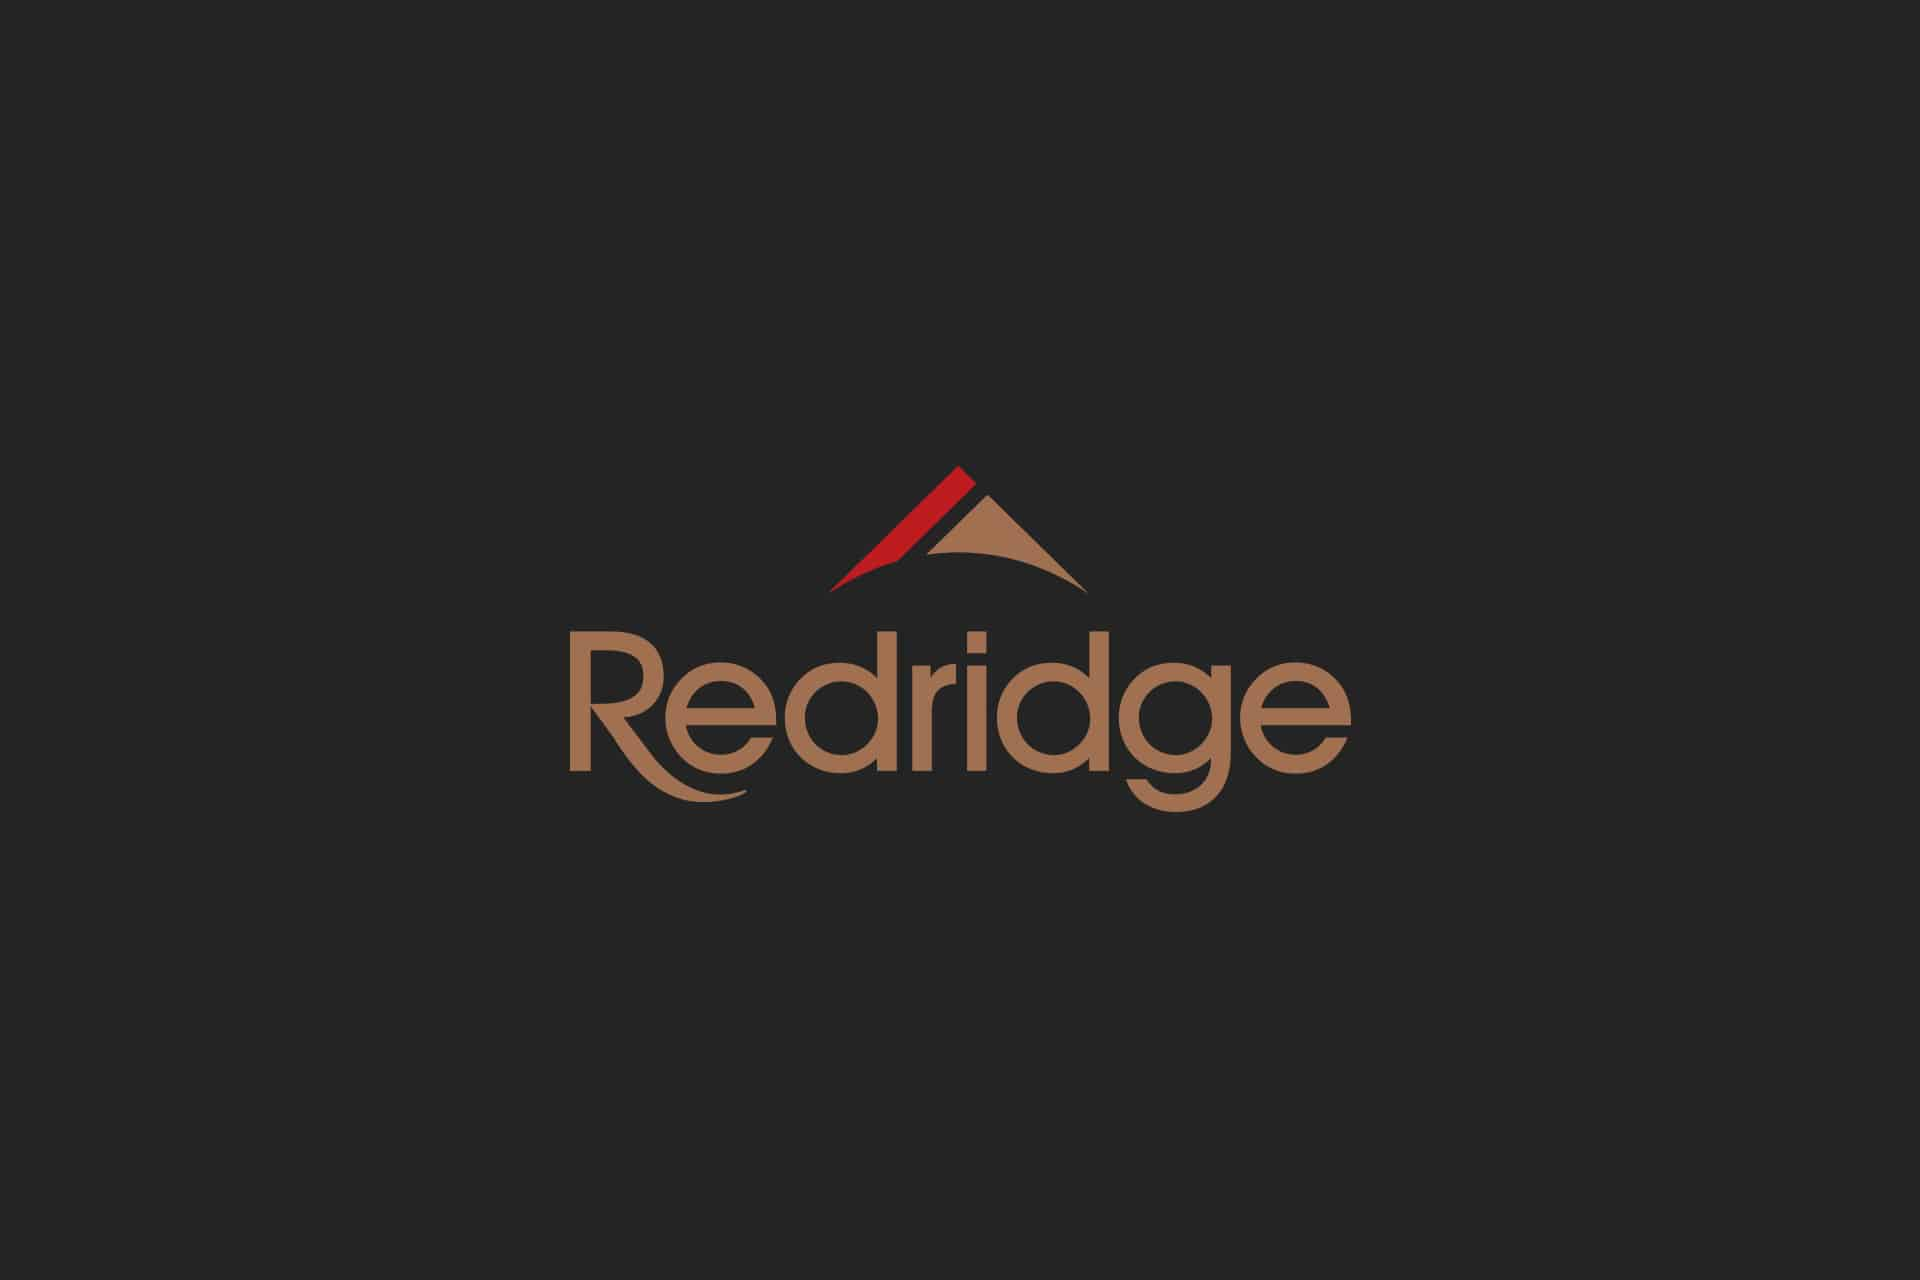 redridge-logo-design2